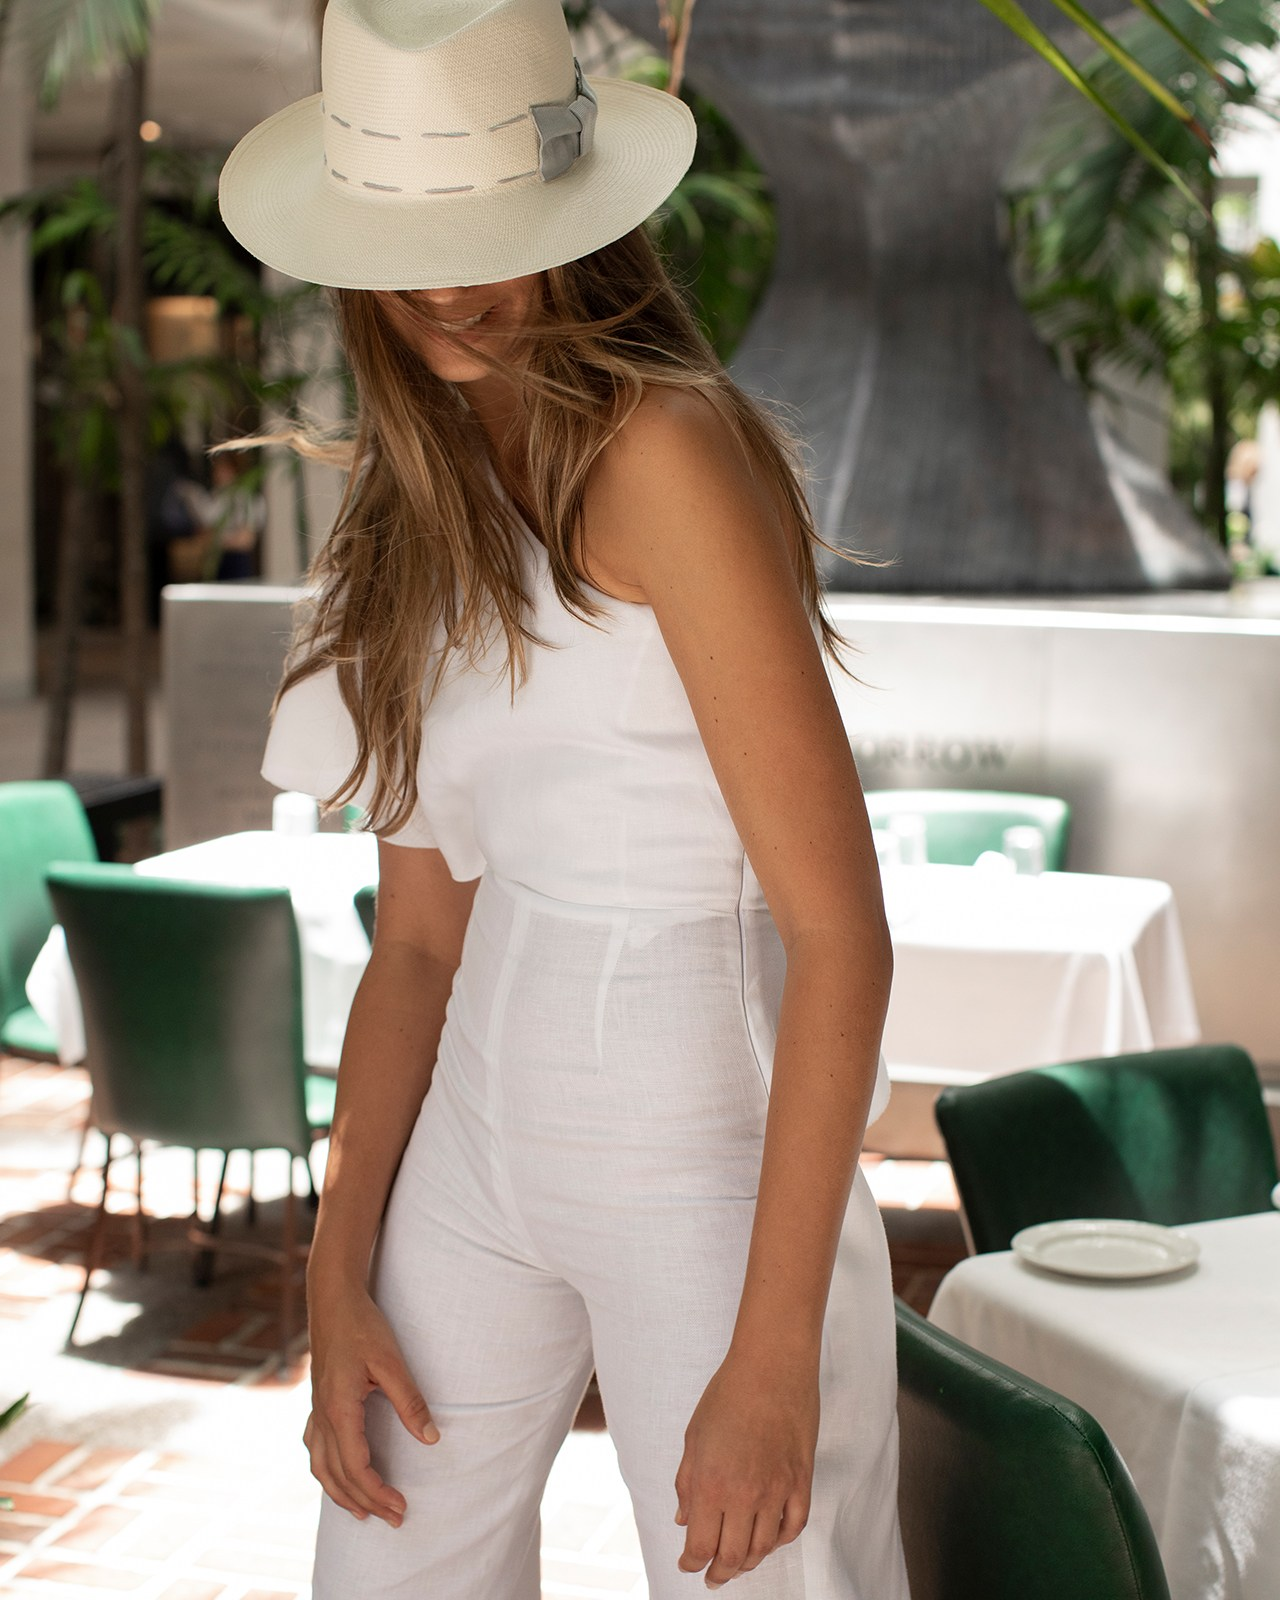 100% Capri linen jumpsuit styled with a gray-trimmed Panama hat